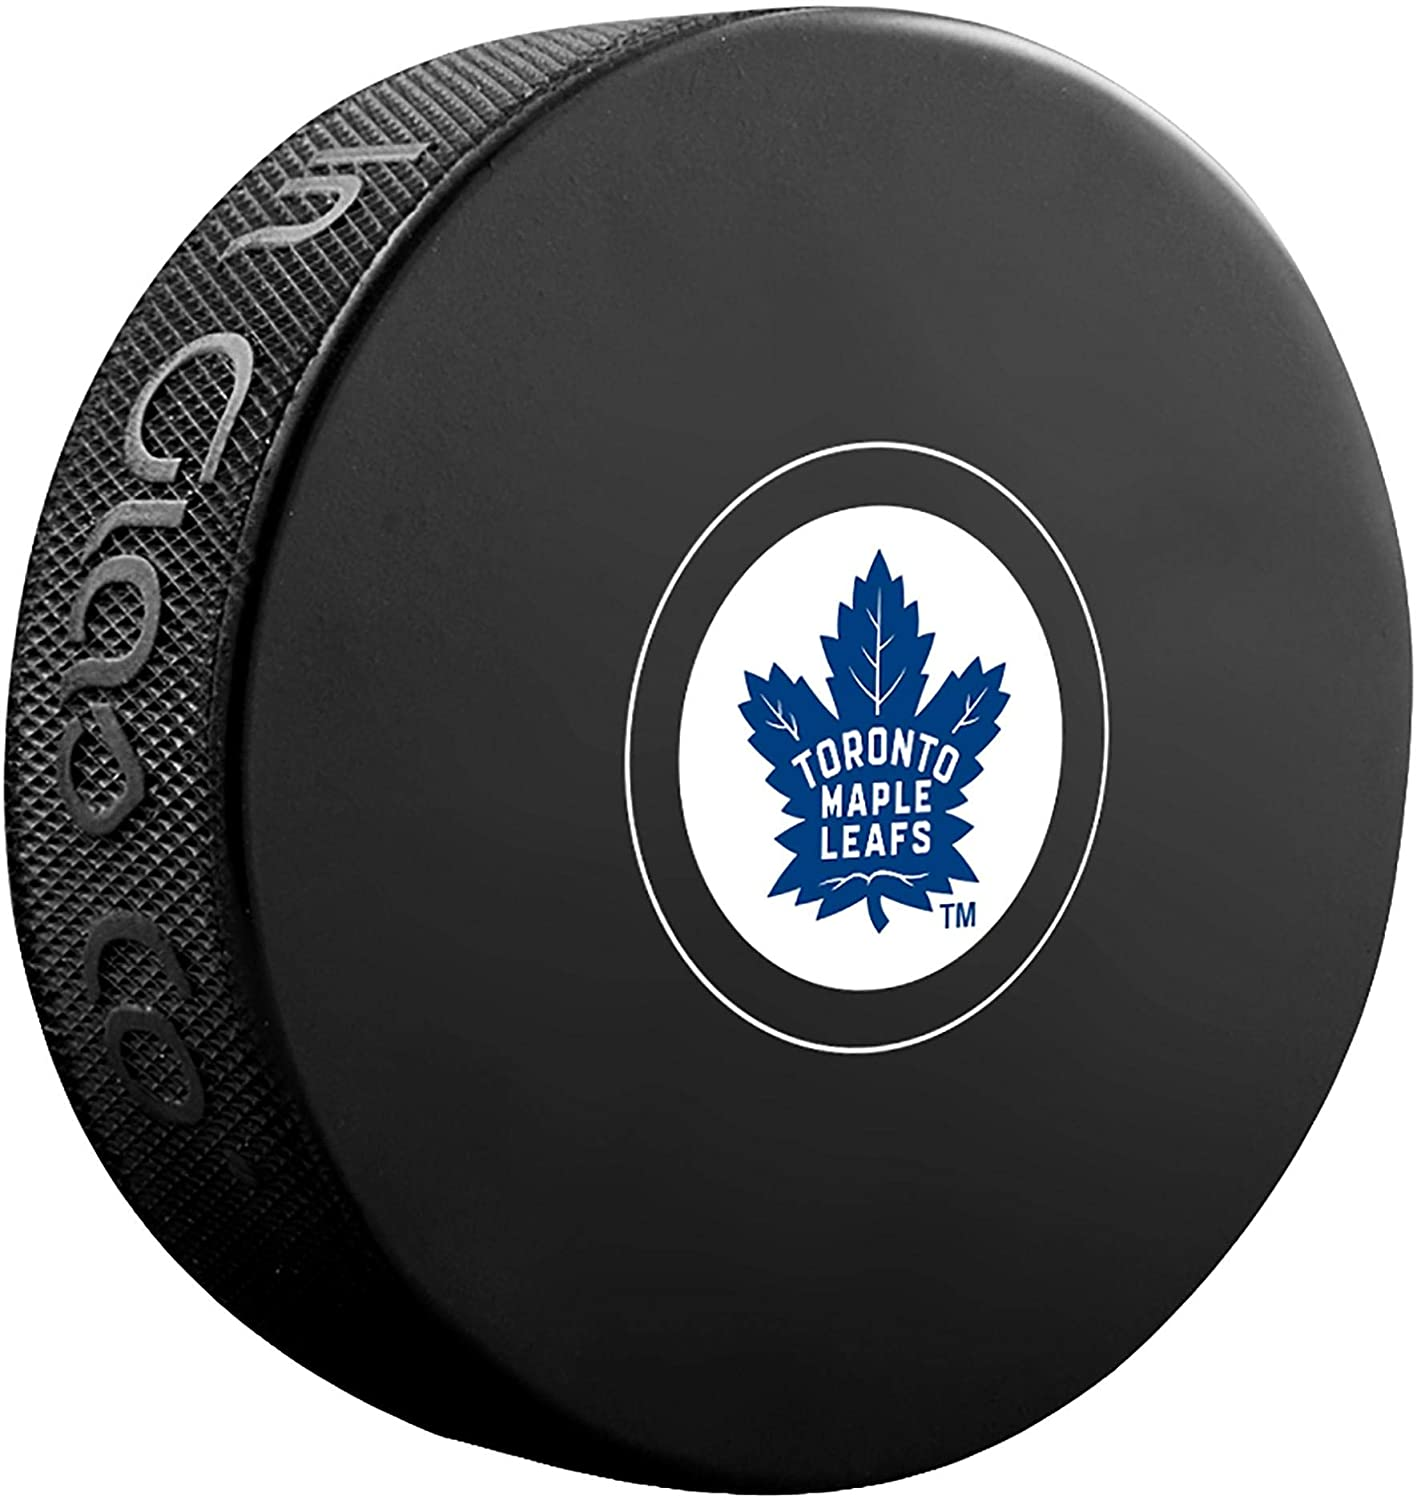 Toronto Maple Leafs Unsigned InGlasCo Autograph Model Hockey Puck Unsigned Pucks Fanatics Authentic Certified